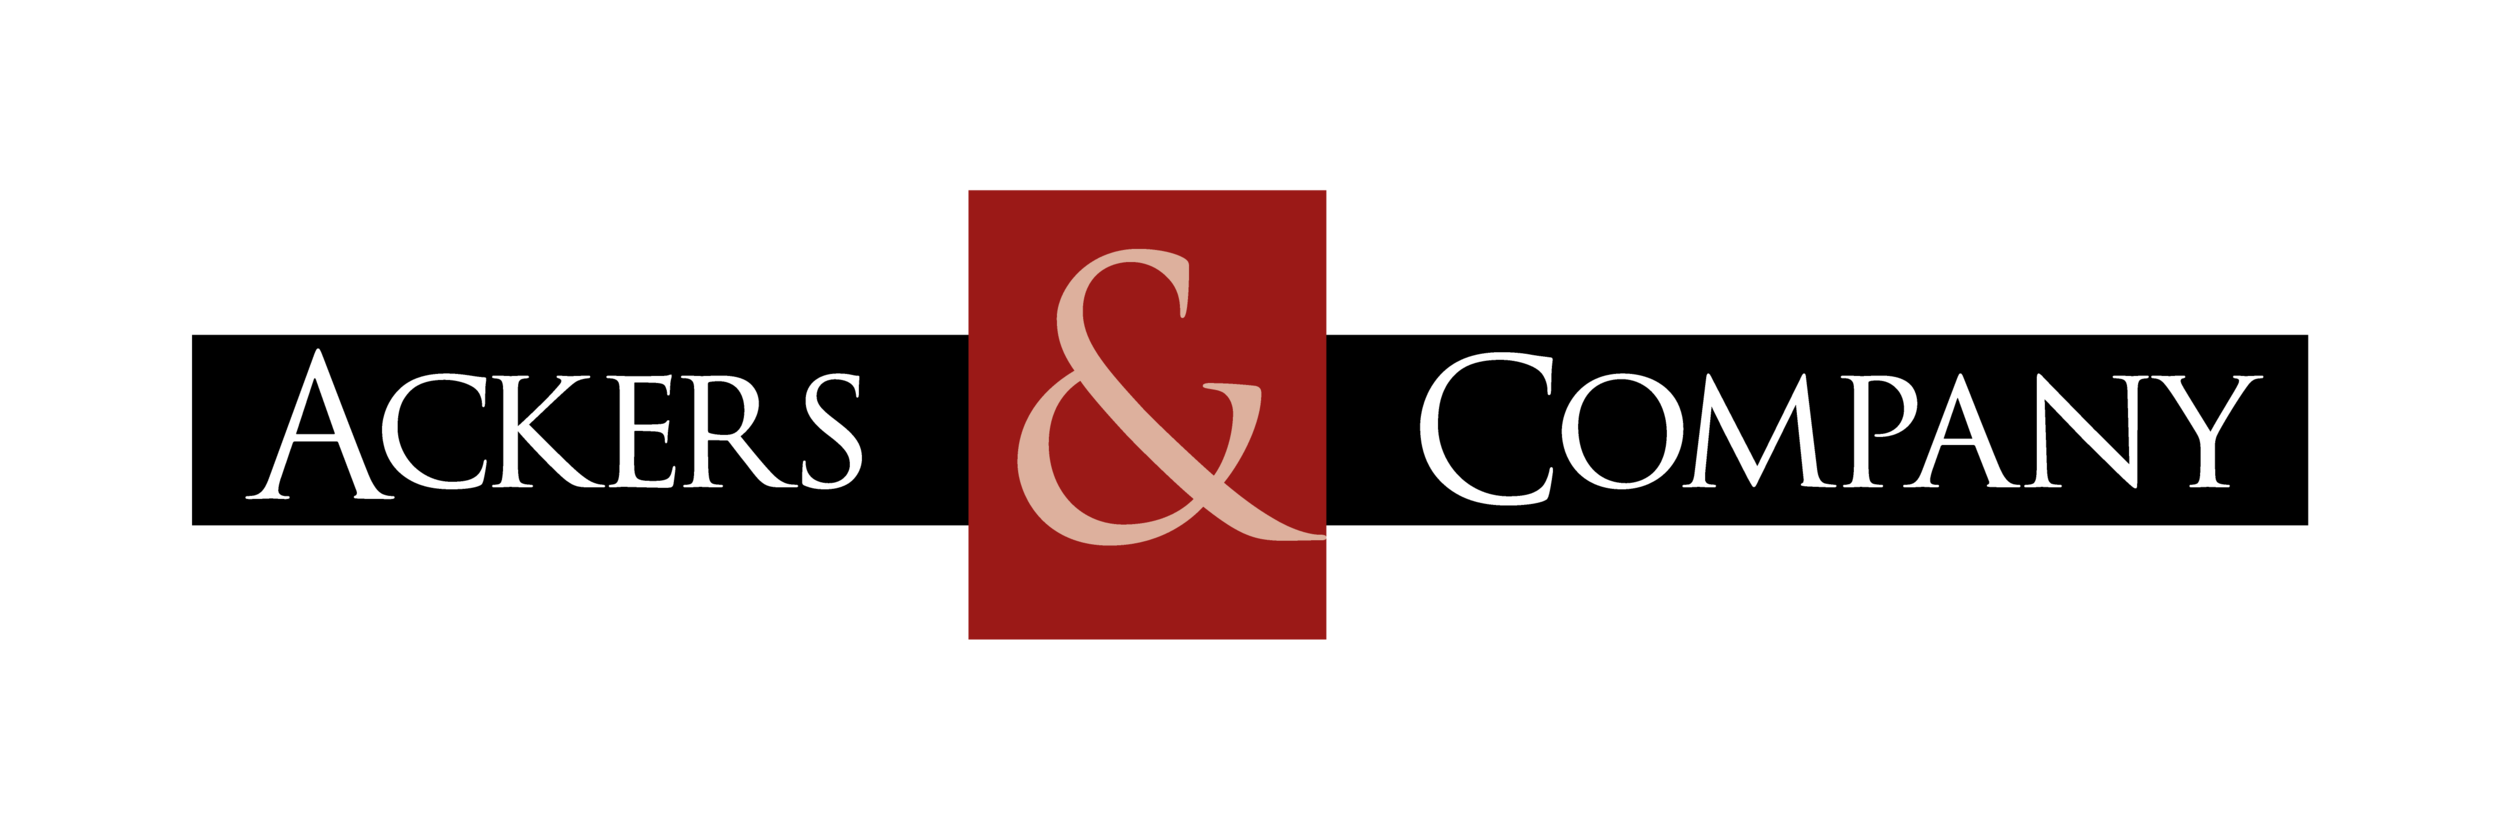 Ackers & Company (1).png